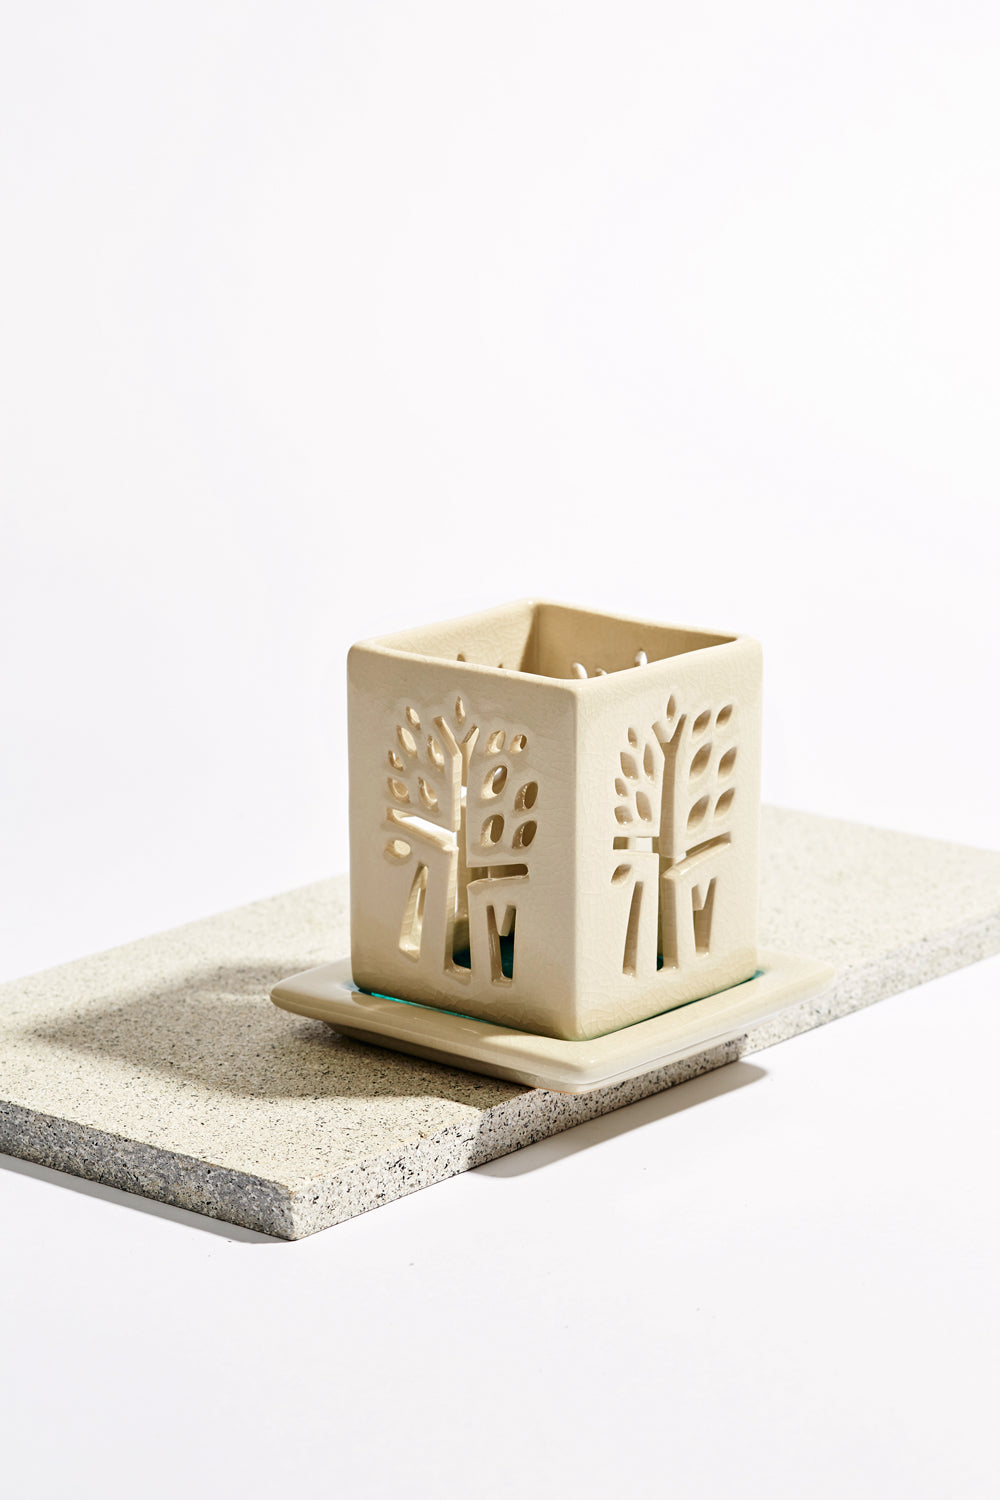 Banyan Tree Candle Holder - S - Banyan Tree Gallery